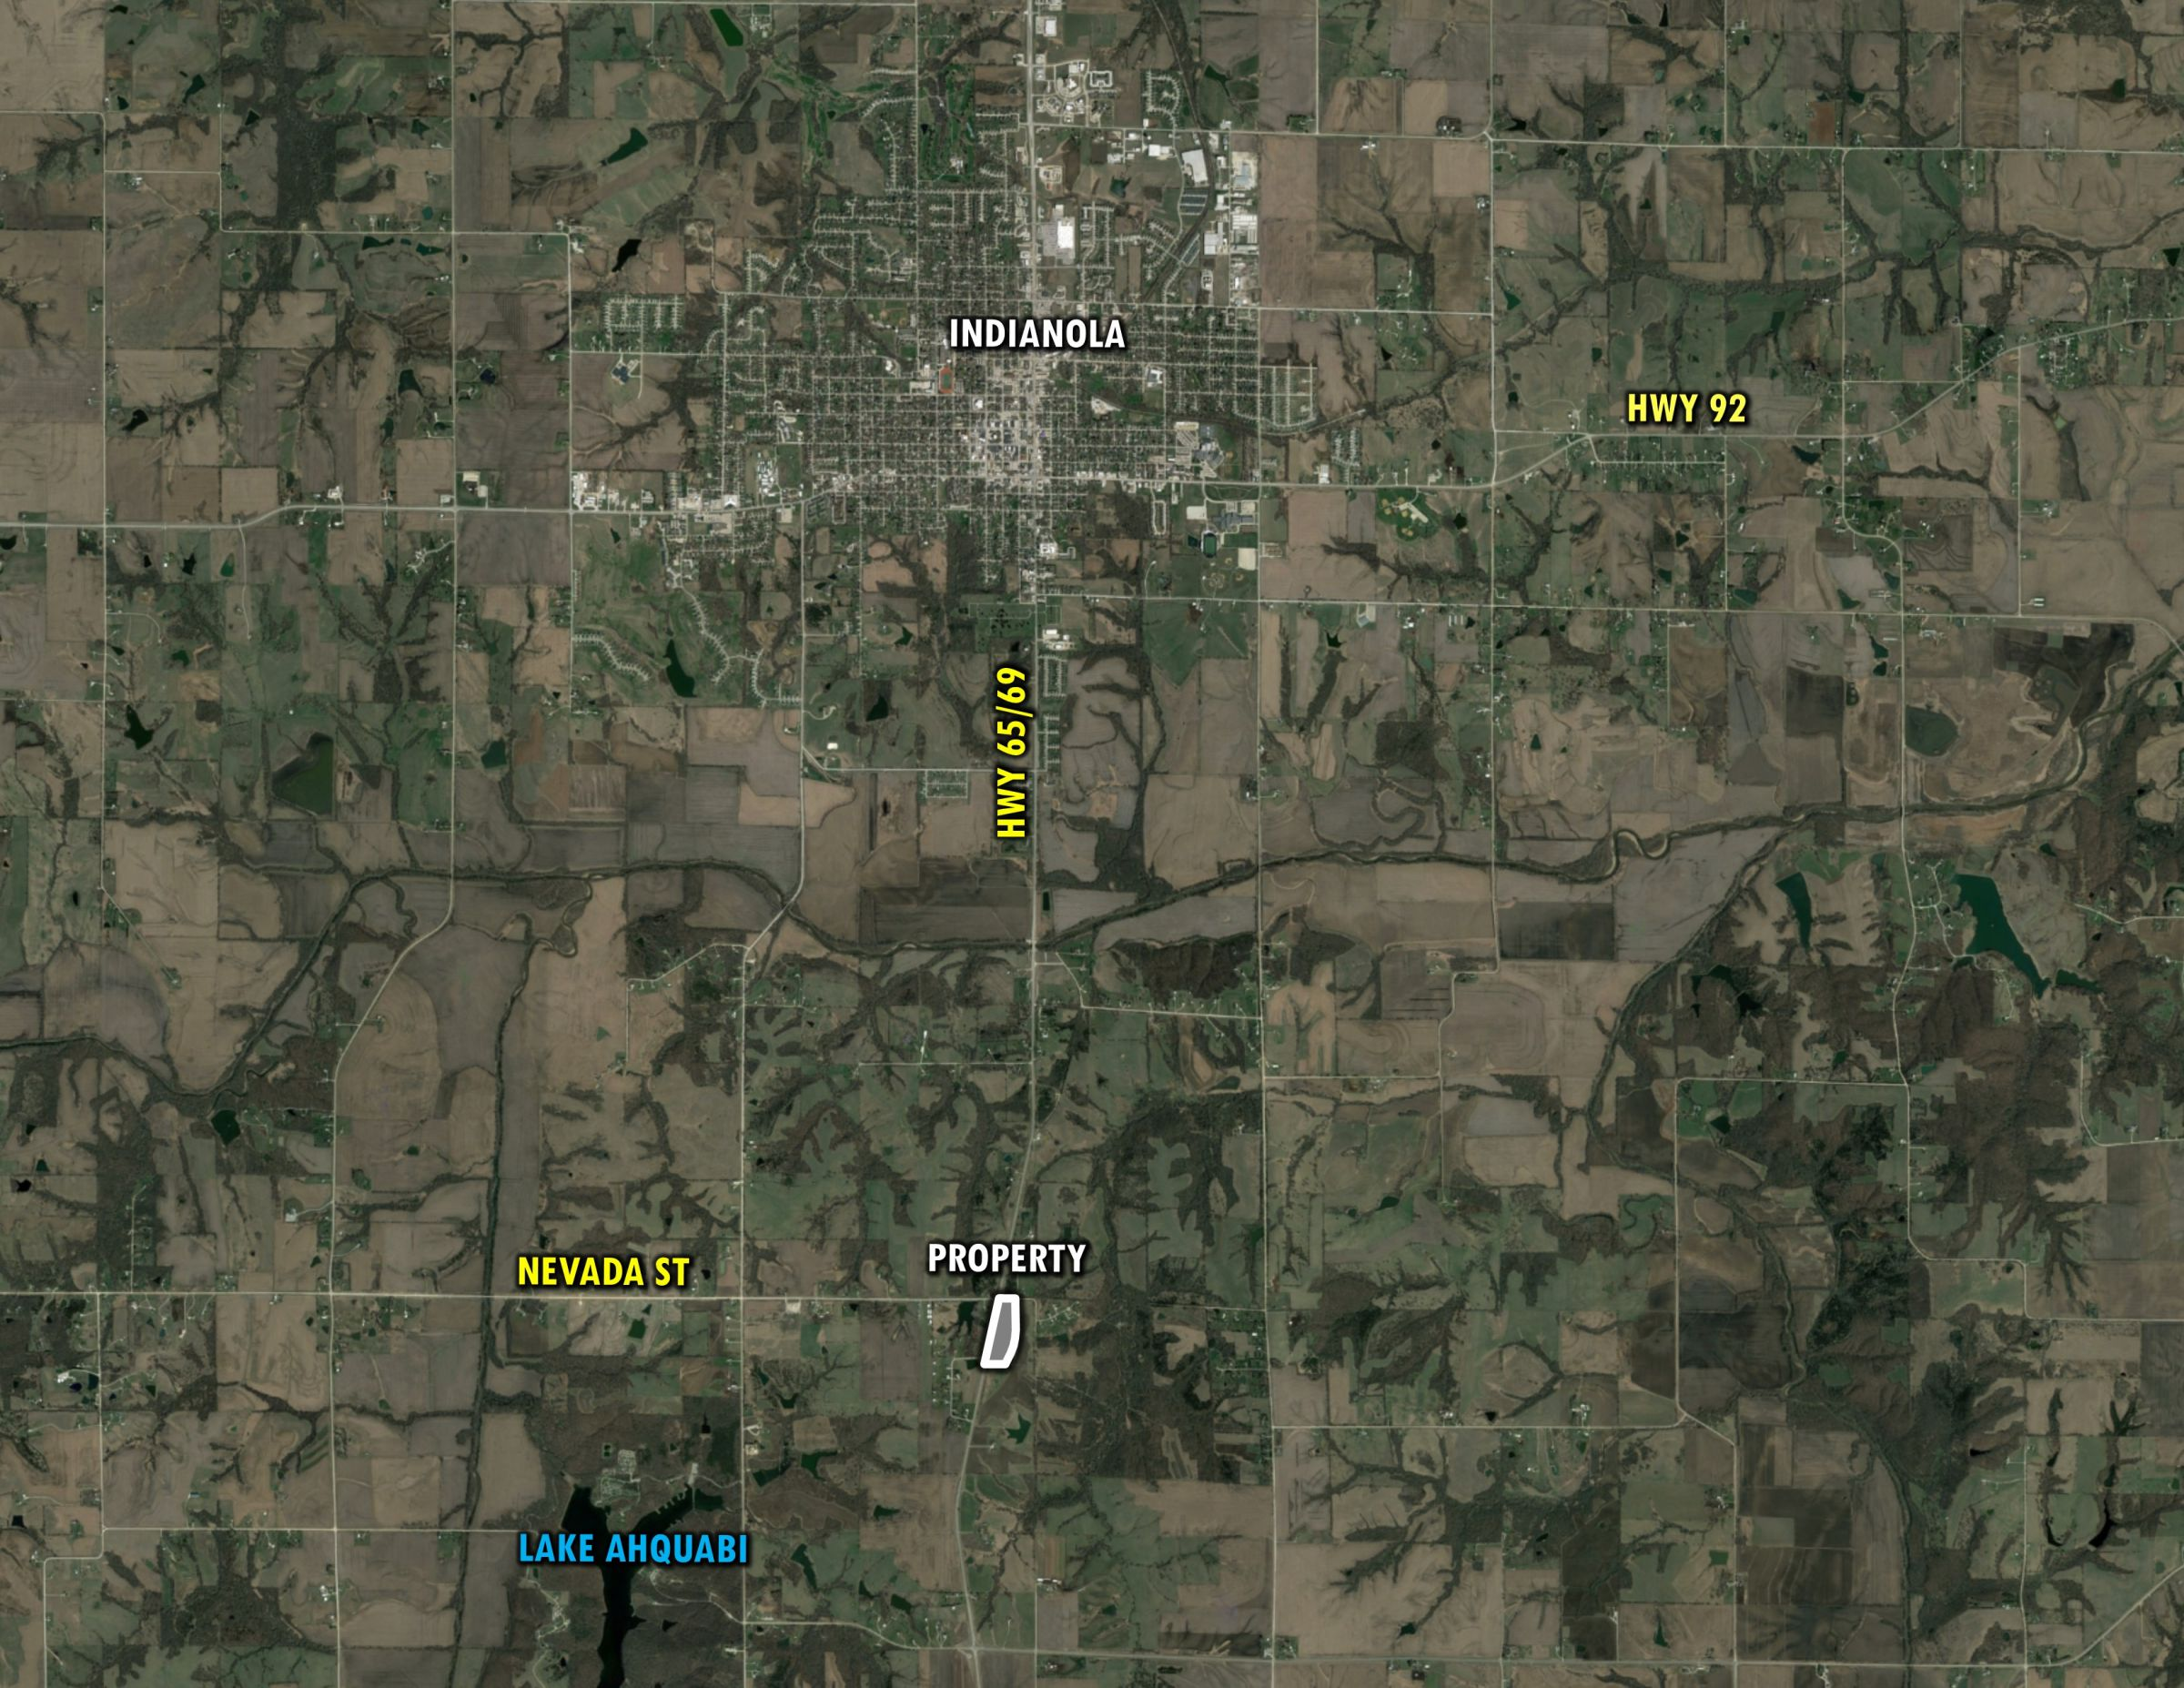 14632-130th-ave-indianola-50125-1-2019-08-16-164535.jpg